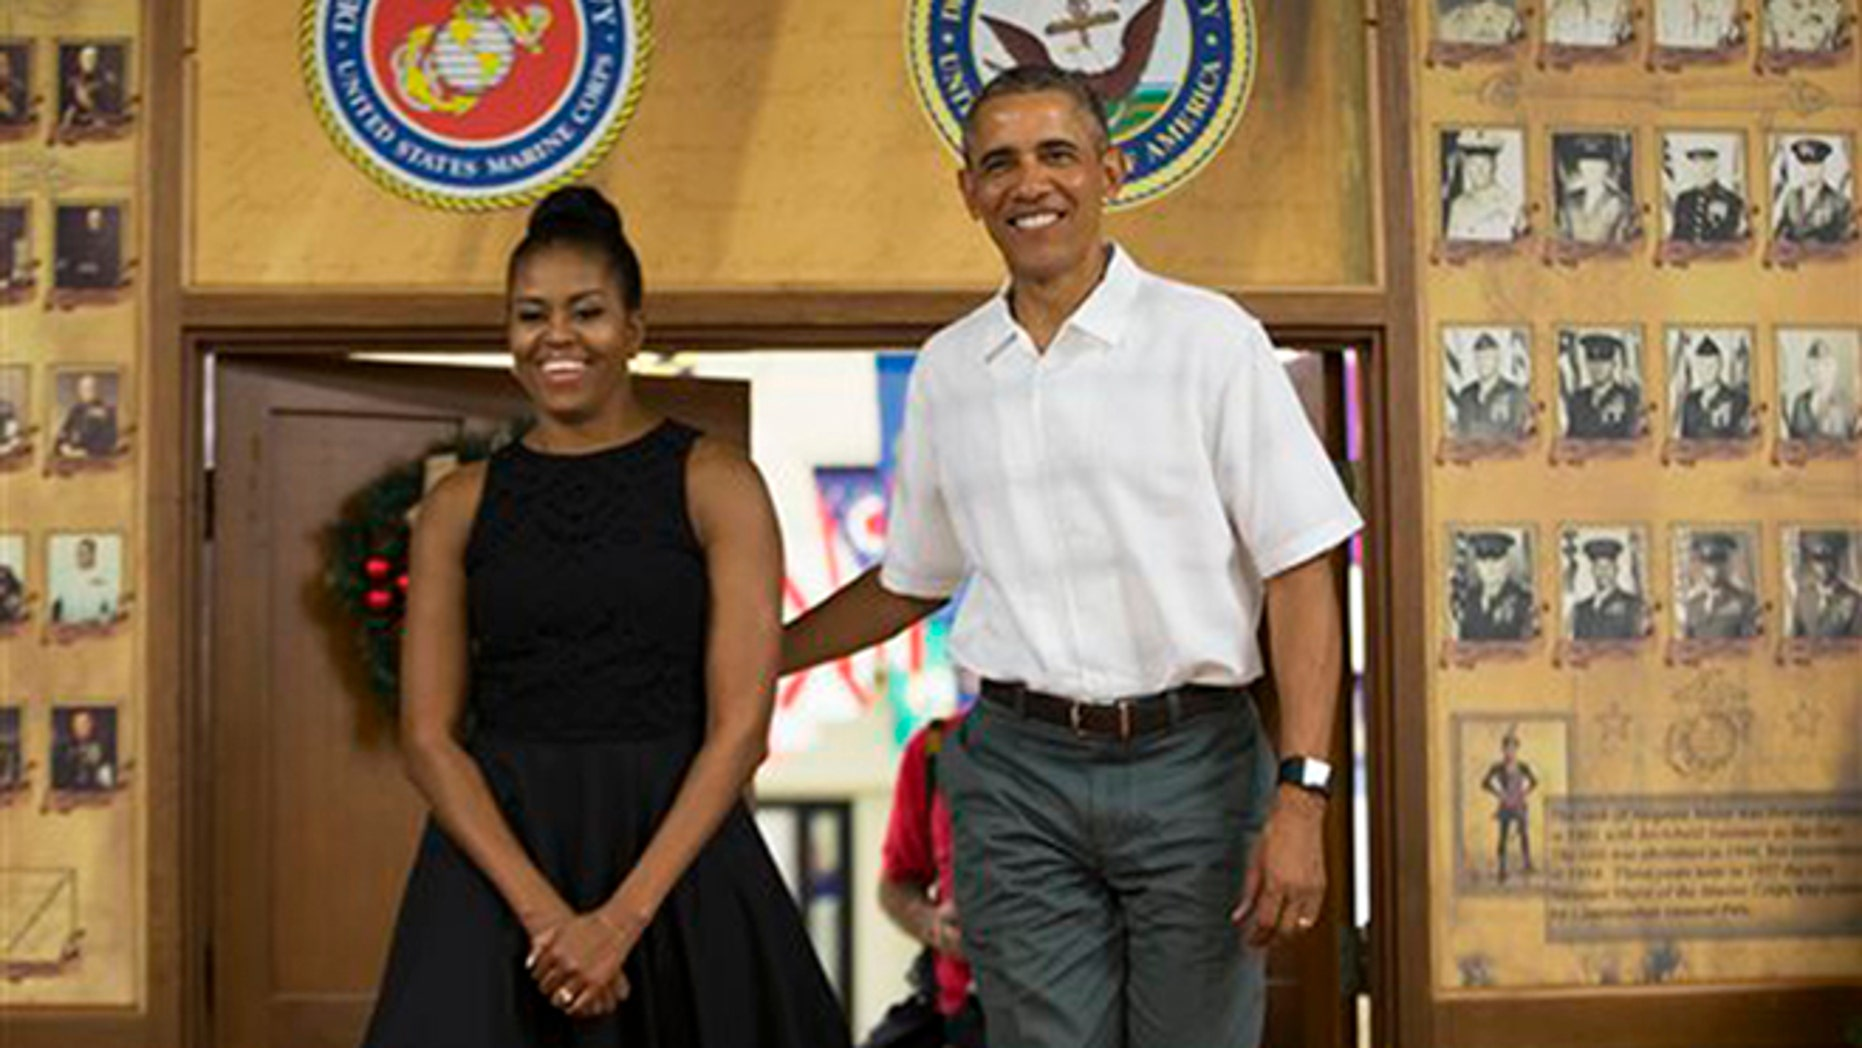 First lady Michelle Obama, left, and President Barack Obama arrive for an event to thank service members and their families at Marine Corp Base Hawaii, on Friday, Dec. 25, 2015, in Kaneohe Bay, Hawaii. (AP Photo/Evan Vucci)